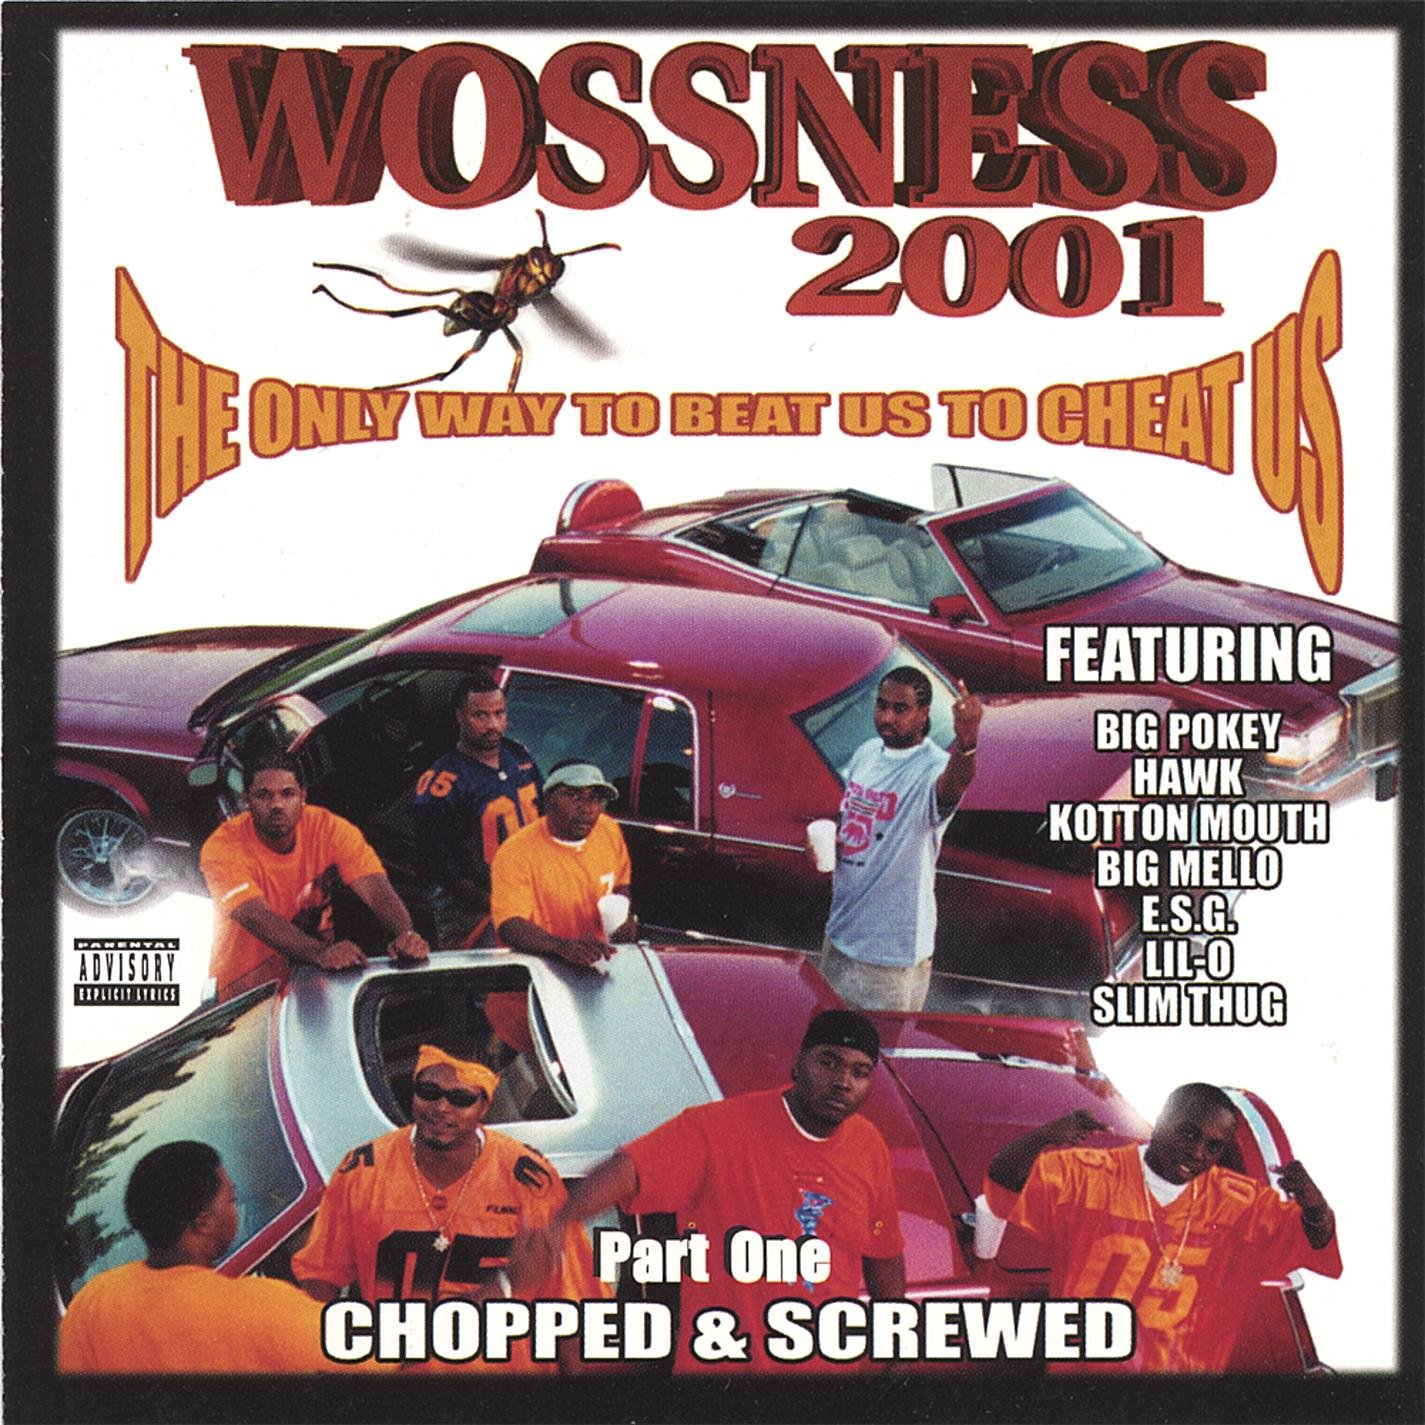 Woss Ness-The Only Way To Beat Us To Cheat Us-CD-FLAC-2001-AUDiOFiLE